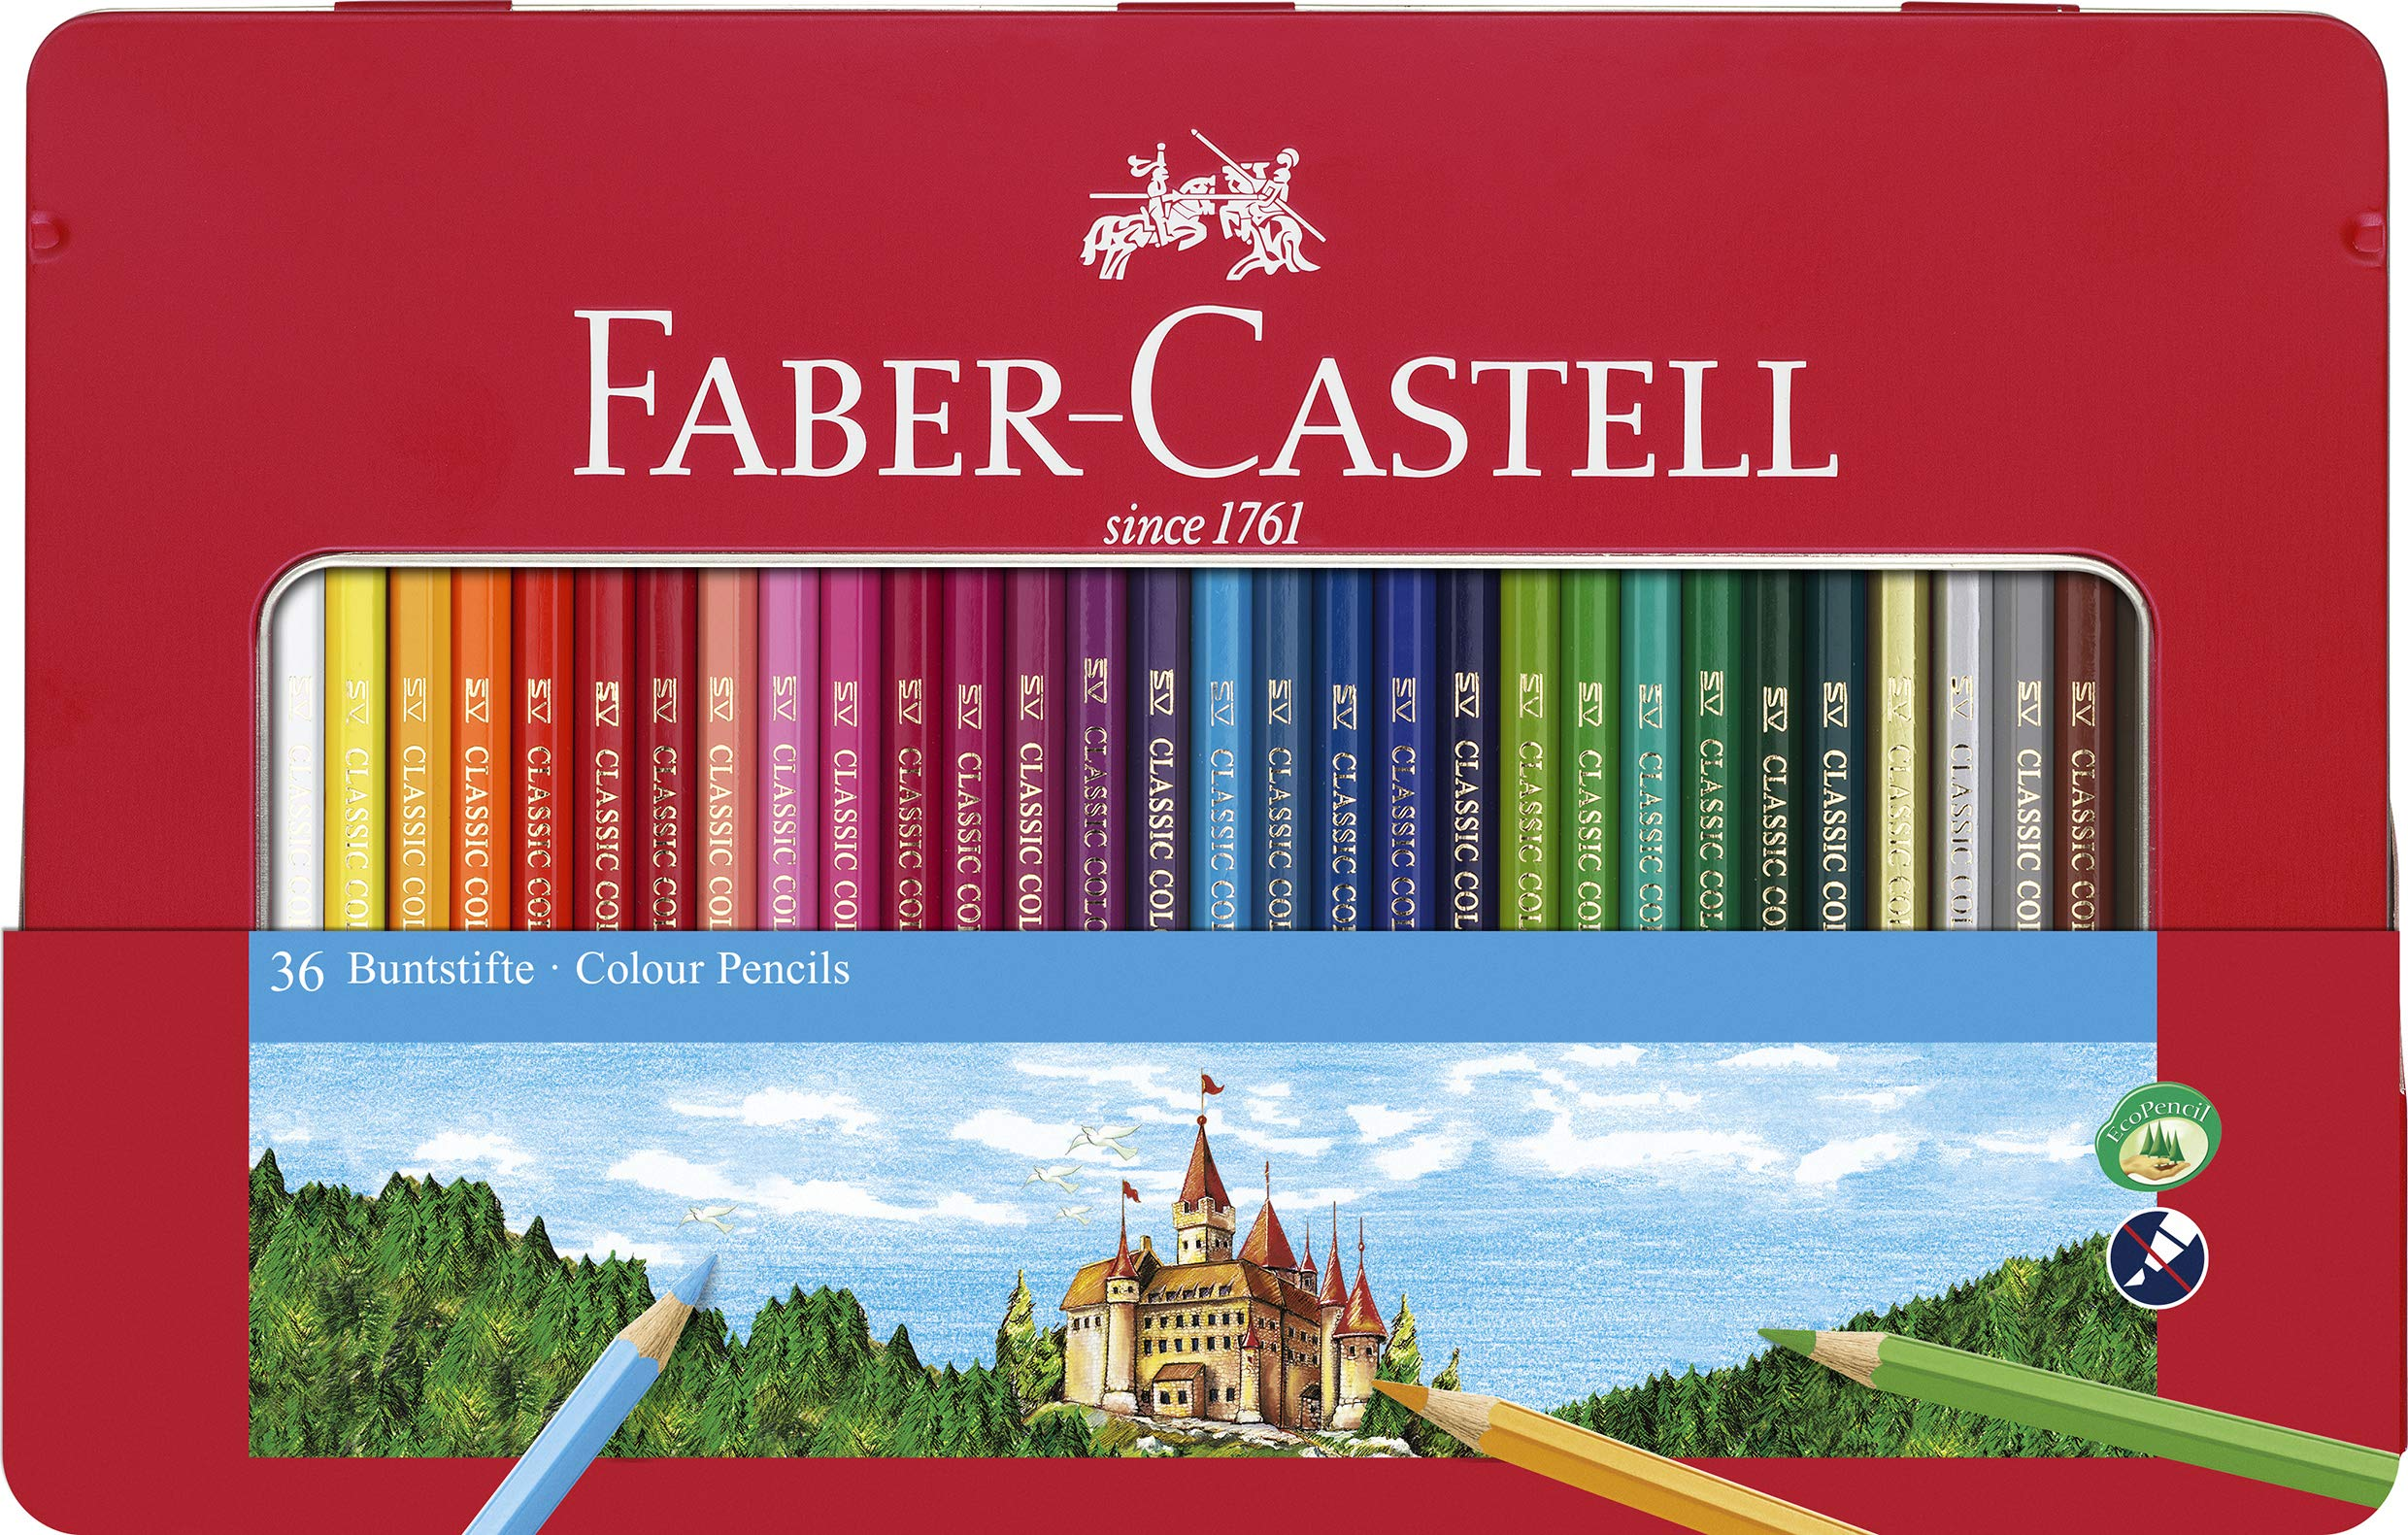 Creativity for Kids Faber Castell Classic Colored Pencils Tin Set, 48 Vibrant Colors in Sturdy Metal Case - Premium Children's Art Products by Creativity for Kids (Image #1)